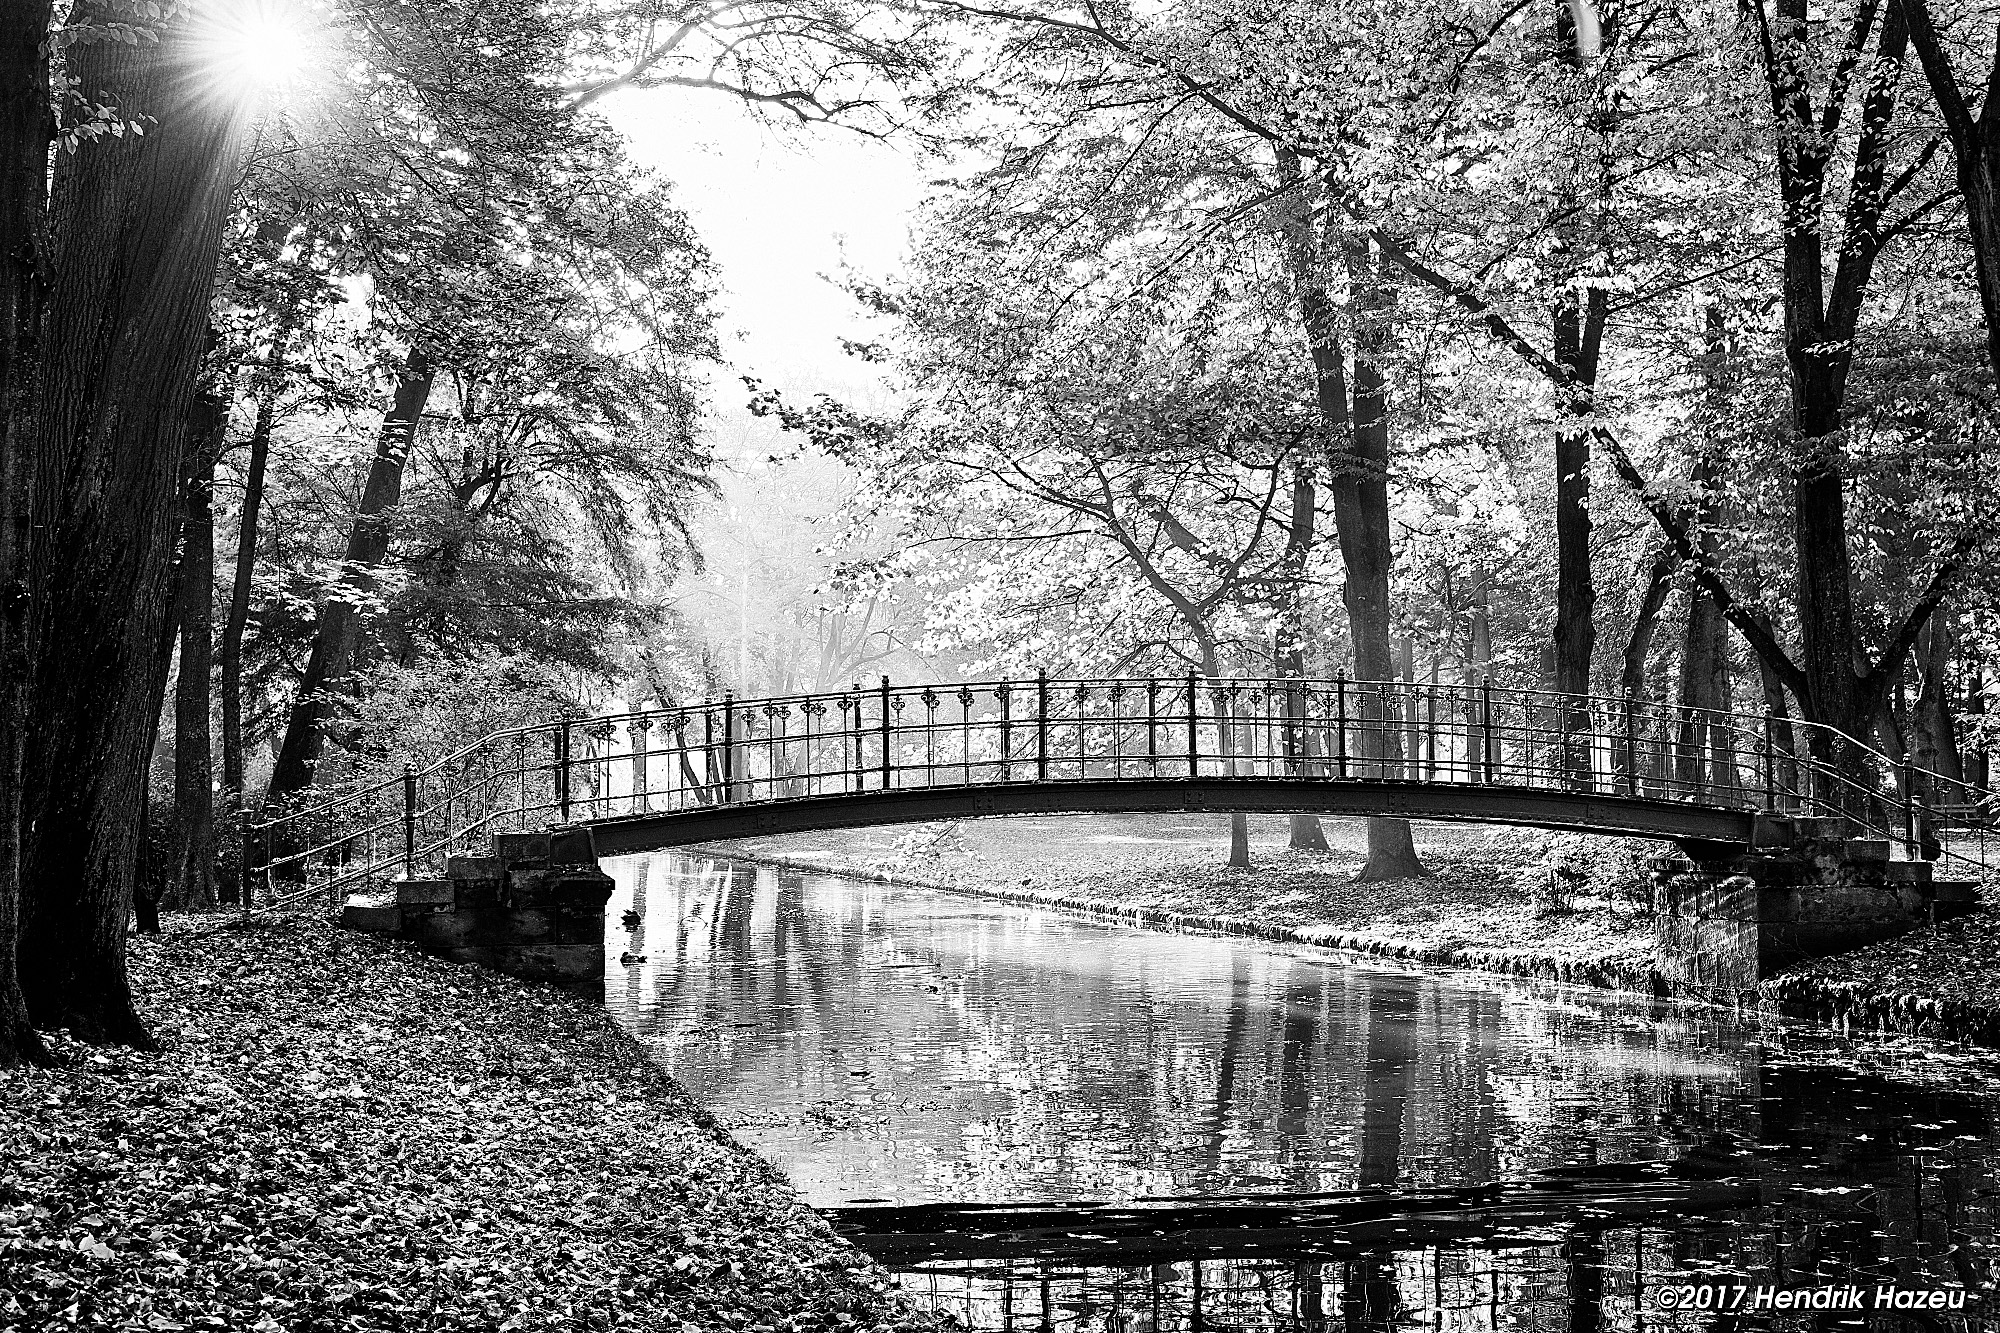 Bridge in the Park, with XF 35/2 on X-Pro2,Capture One 10 with modified BW-15 Style